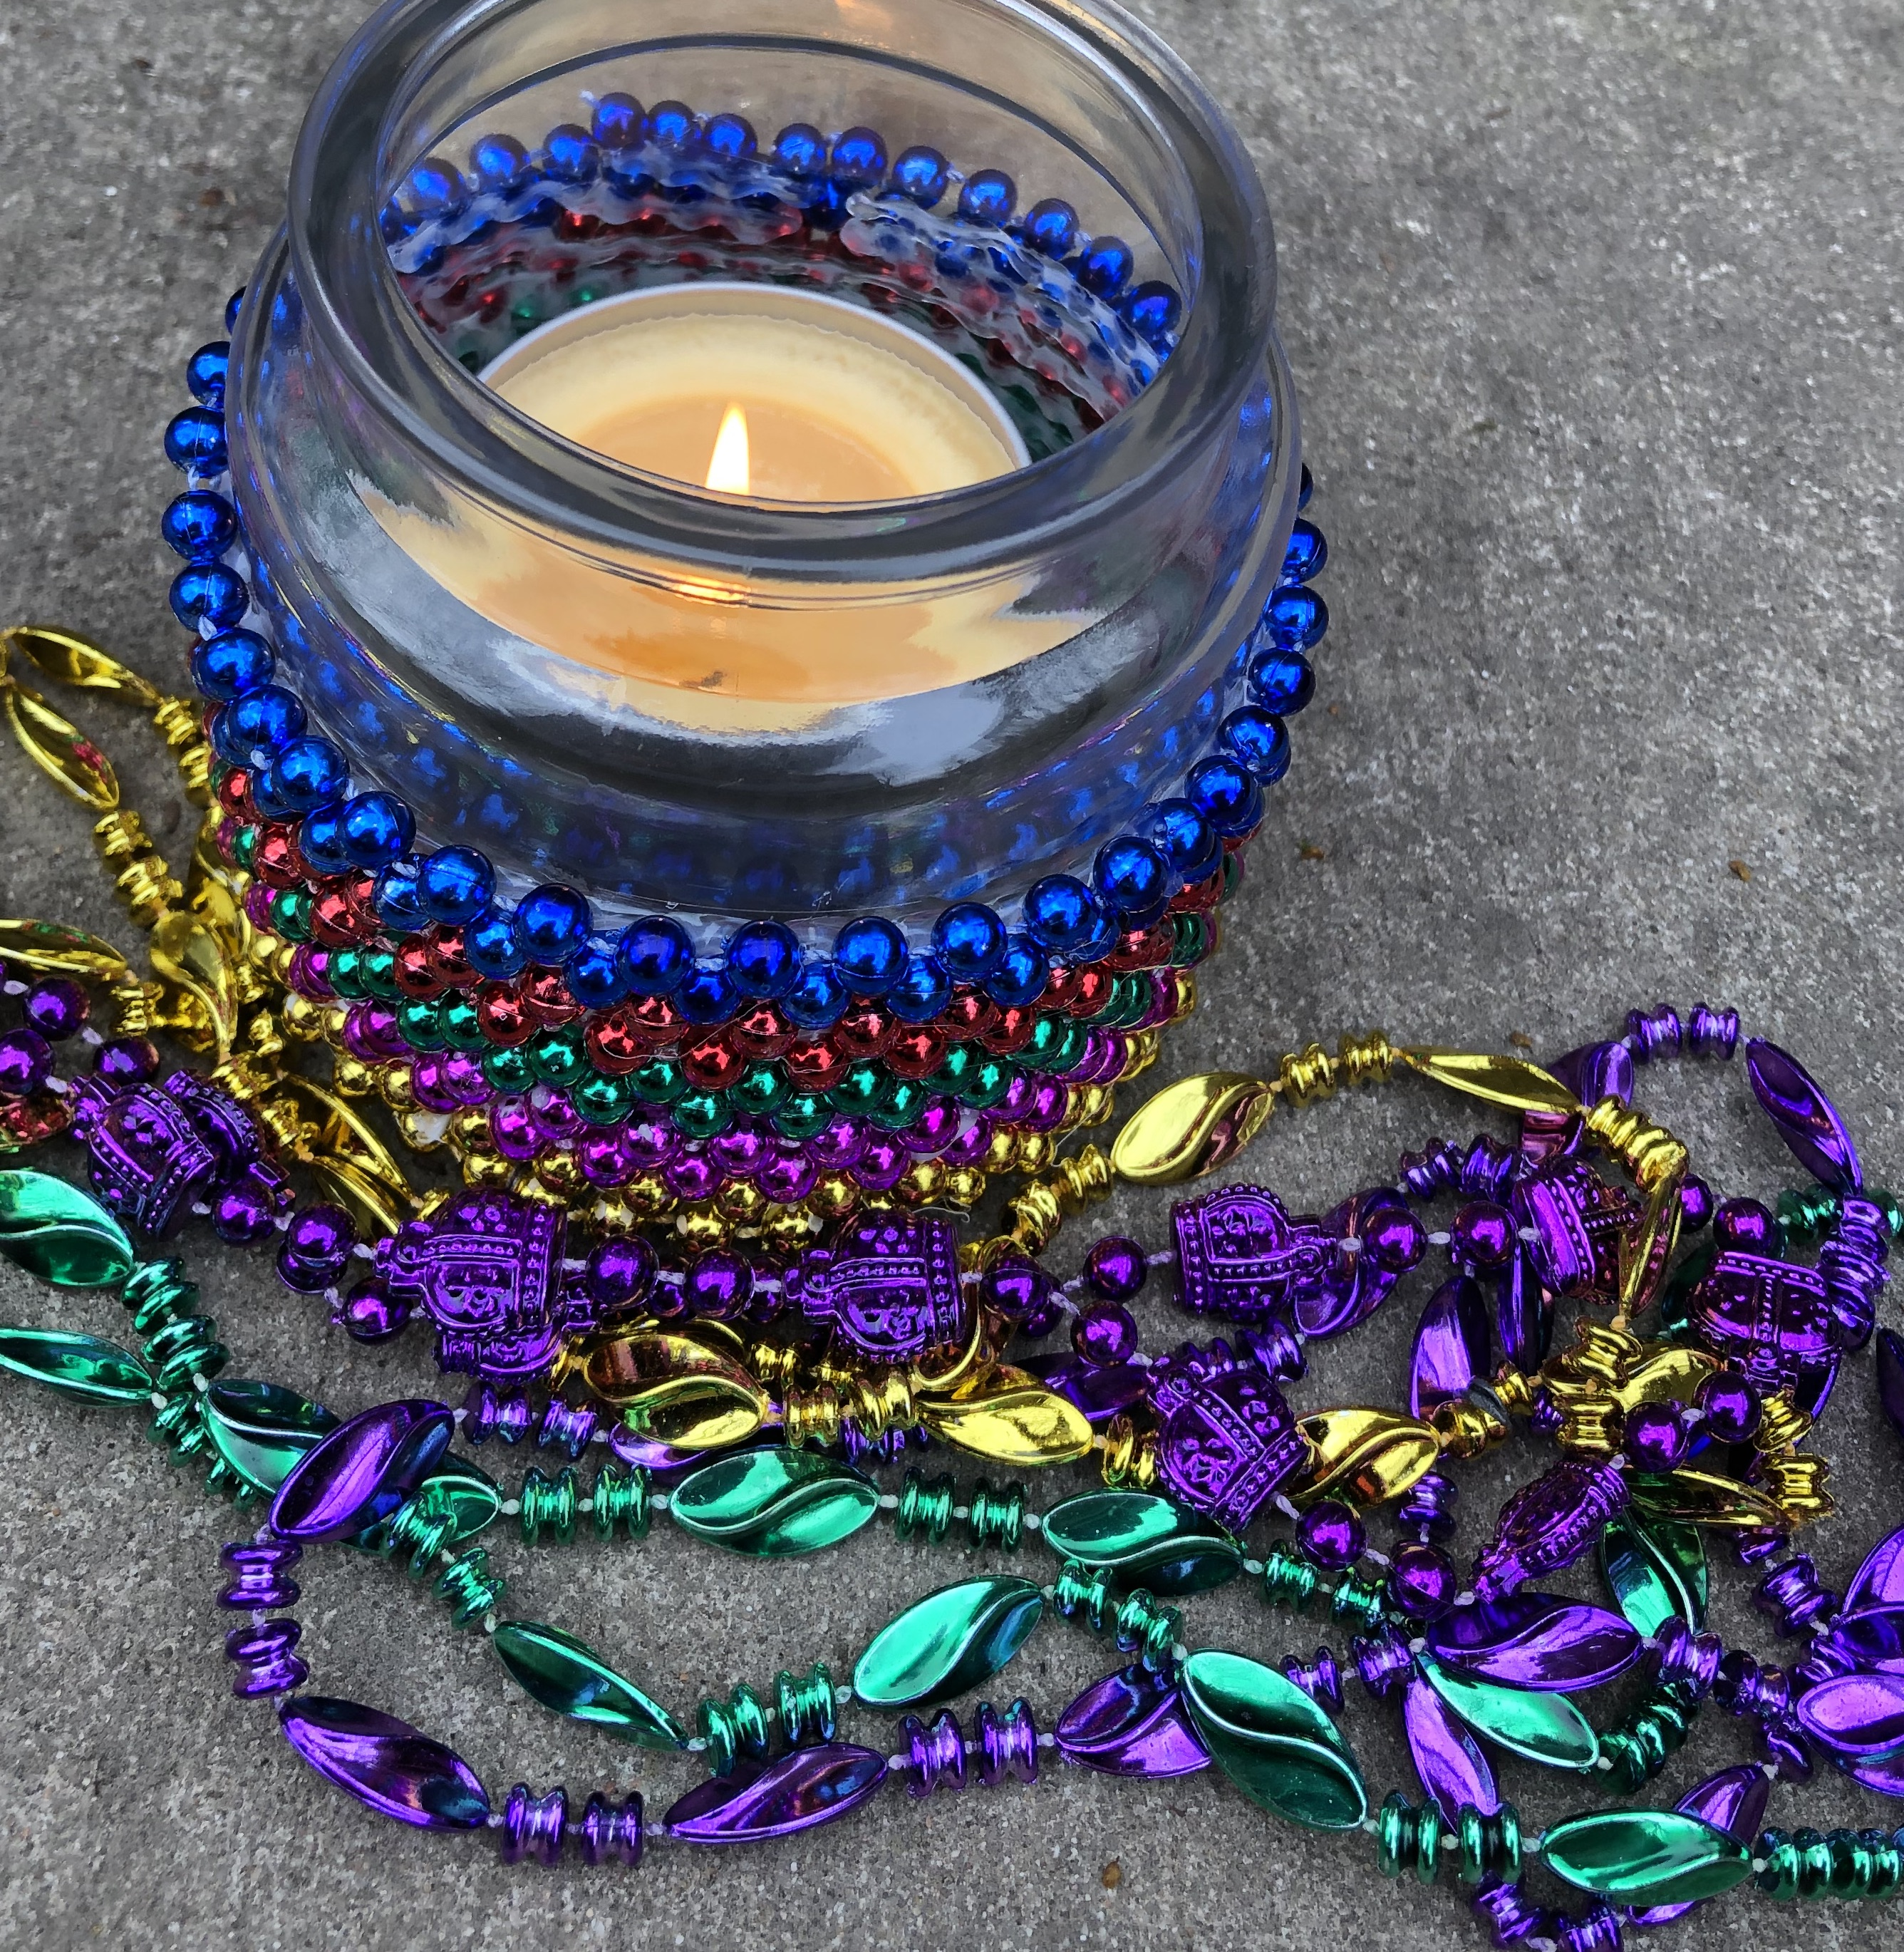 How to Make a Simple Mardi Gras Candle Jar